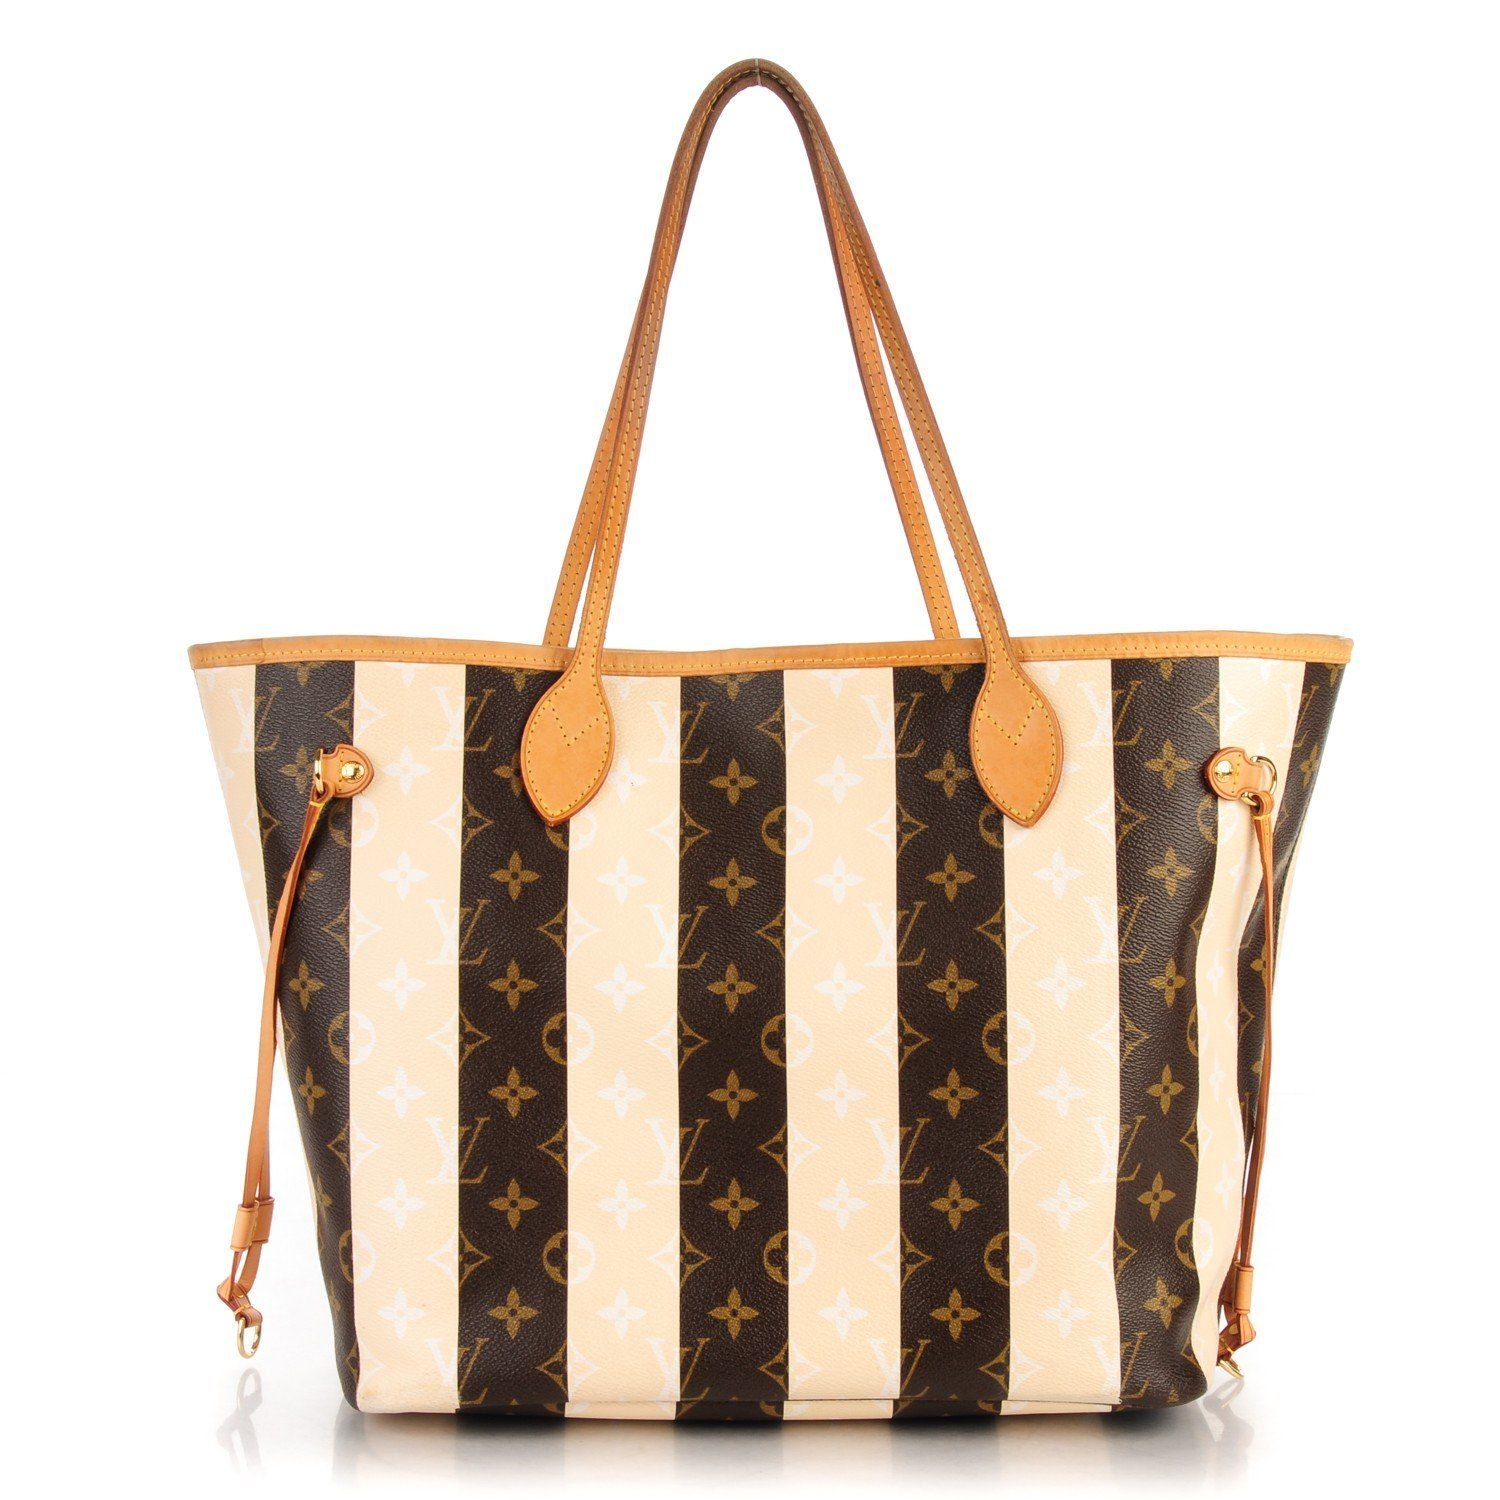 571472f596eab6 This is an authentic LOUIS VUITTON Monogram Rayures Neverfull MM. This chic  tote is finely crafted of Louis Vuitton monogram on brown and beige striped  ...